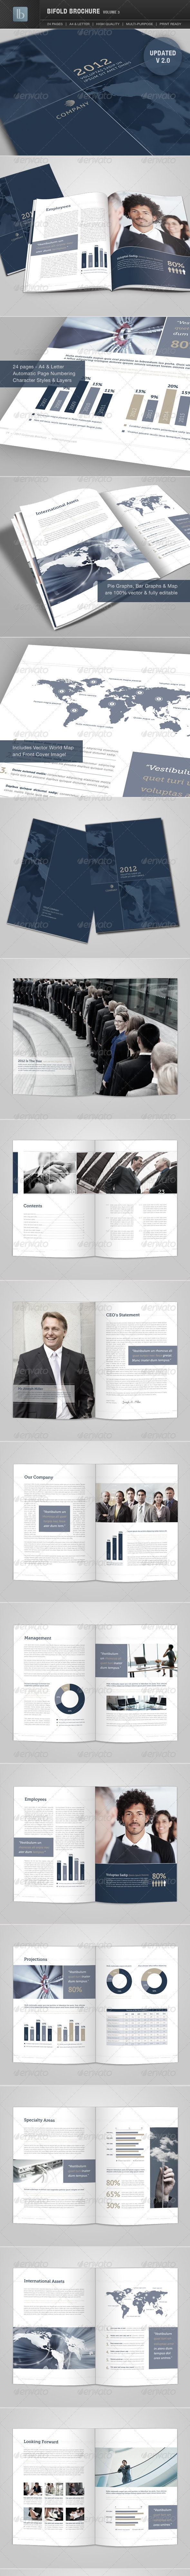 Bifold Brochure | Volume 3 - Corporate Brochures